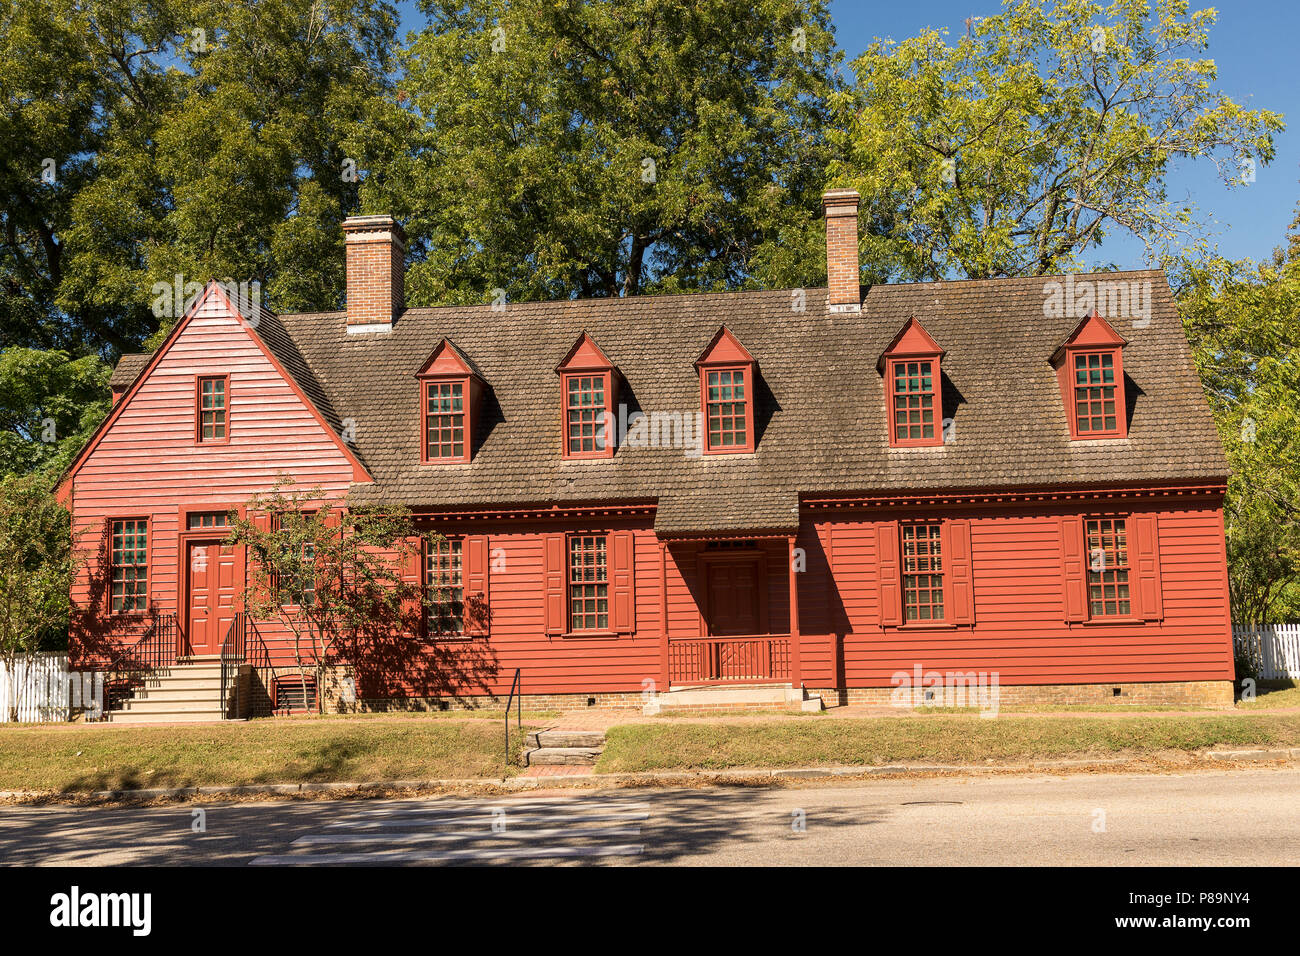 George Davenport House in Colonial Williamsburg. - Stock Image